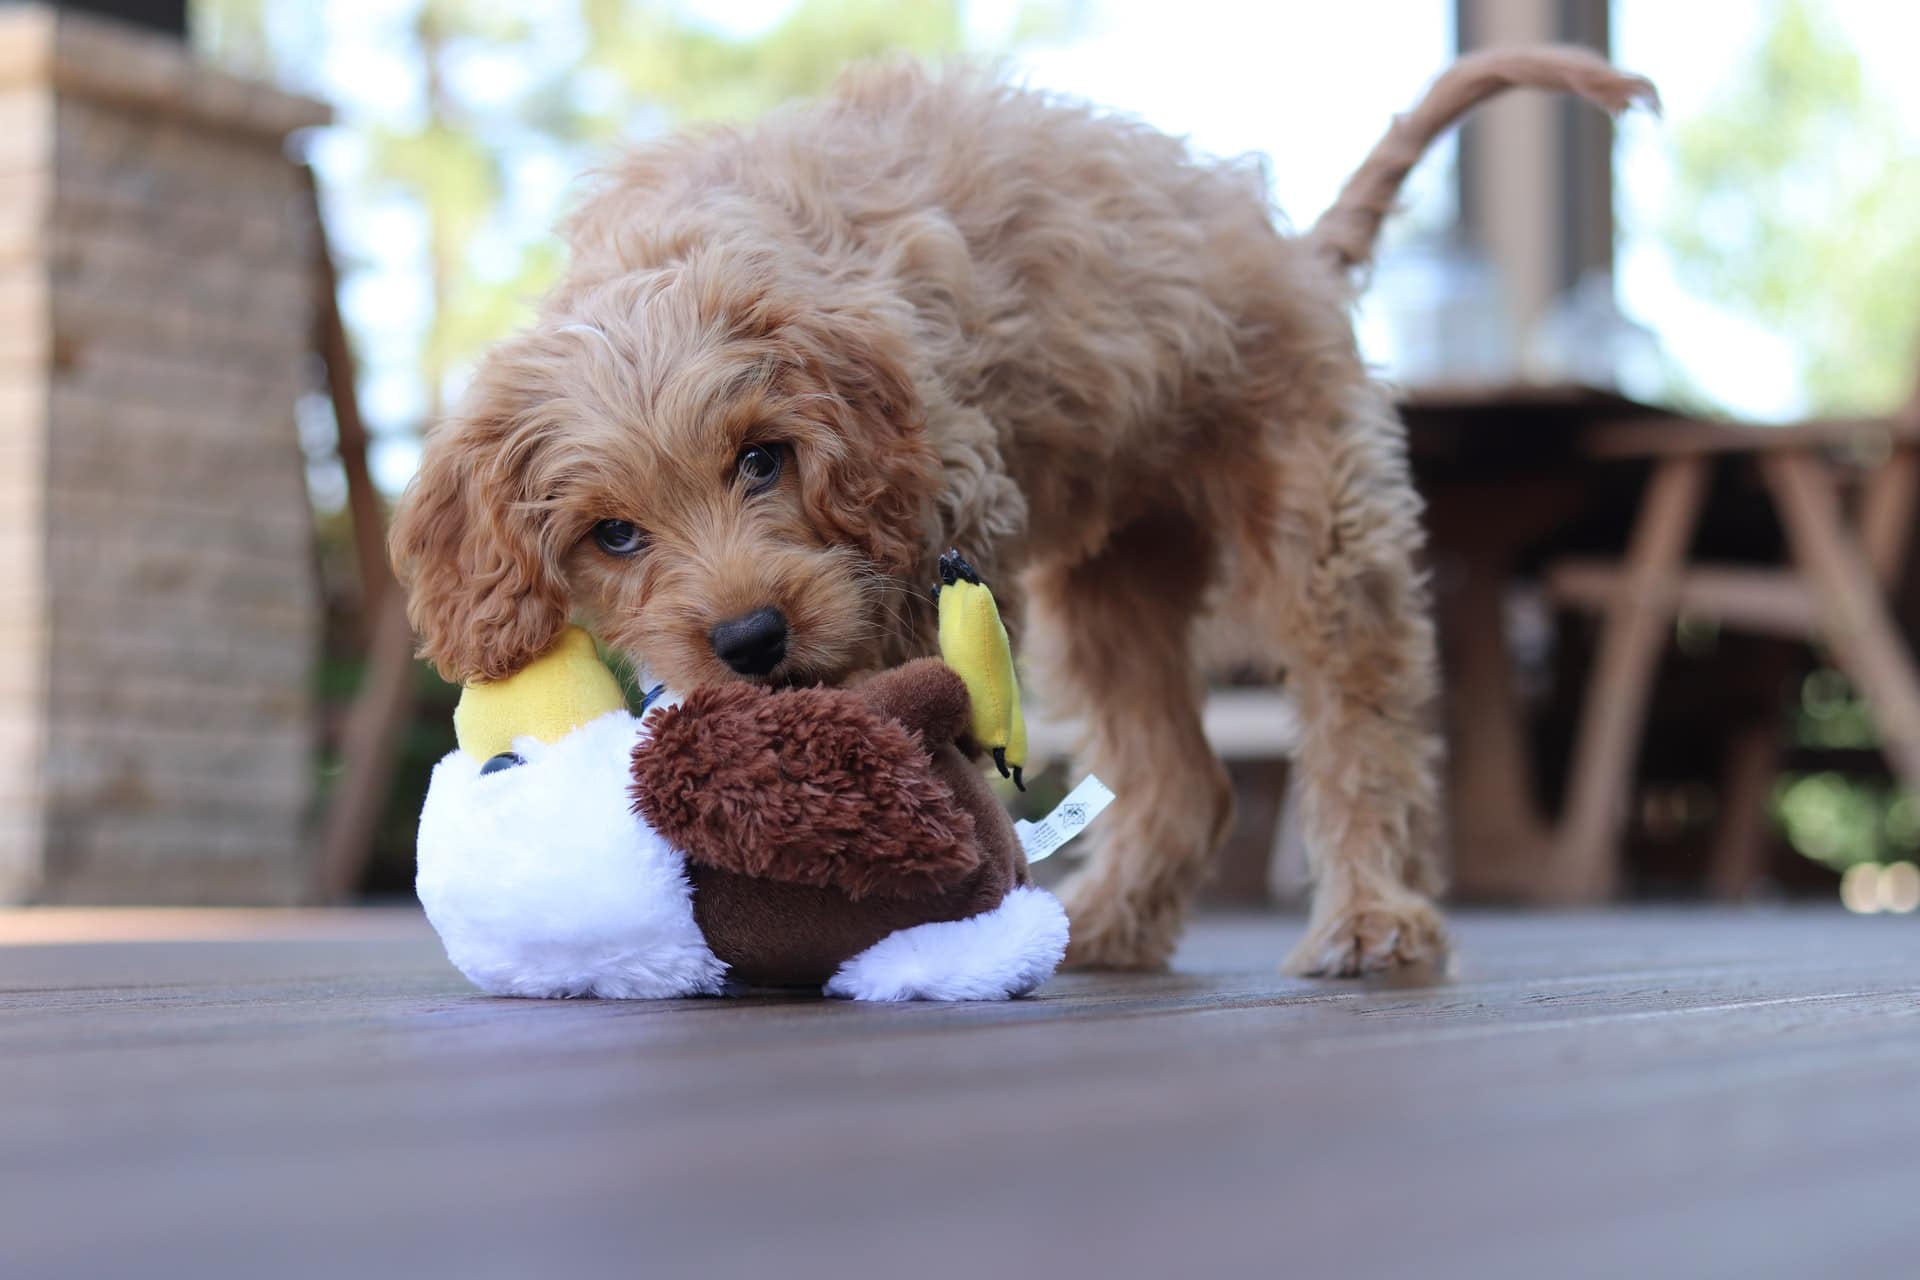 Cavapoo biting and playing with toy